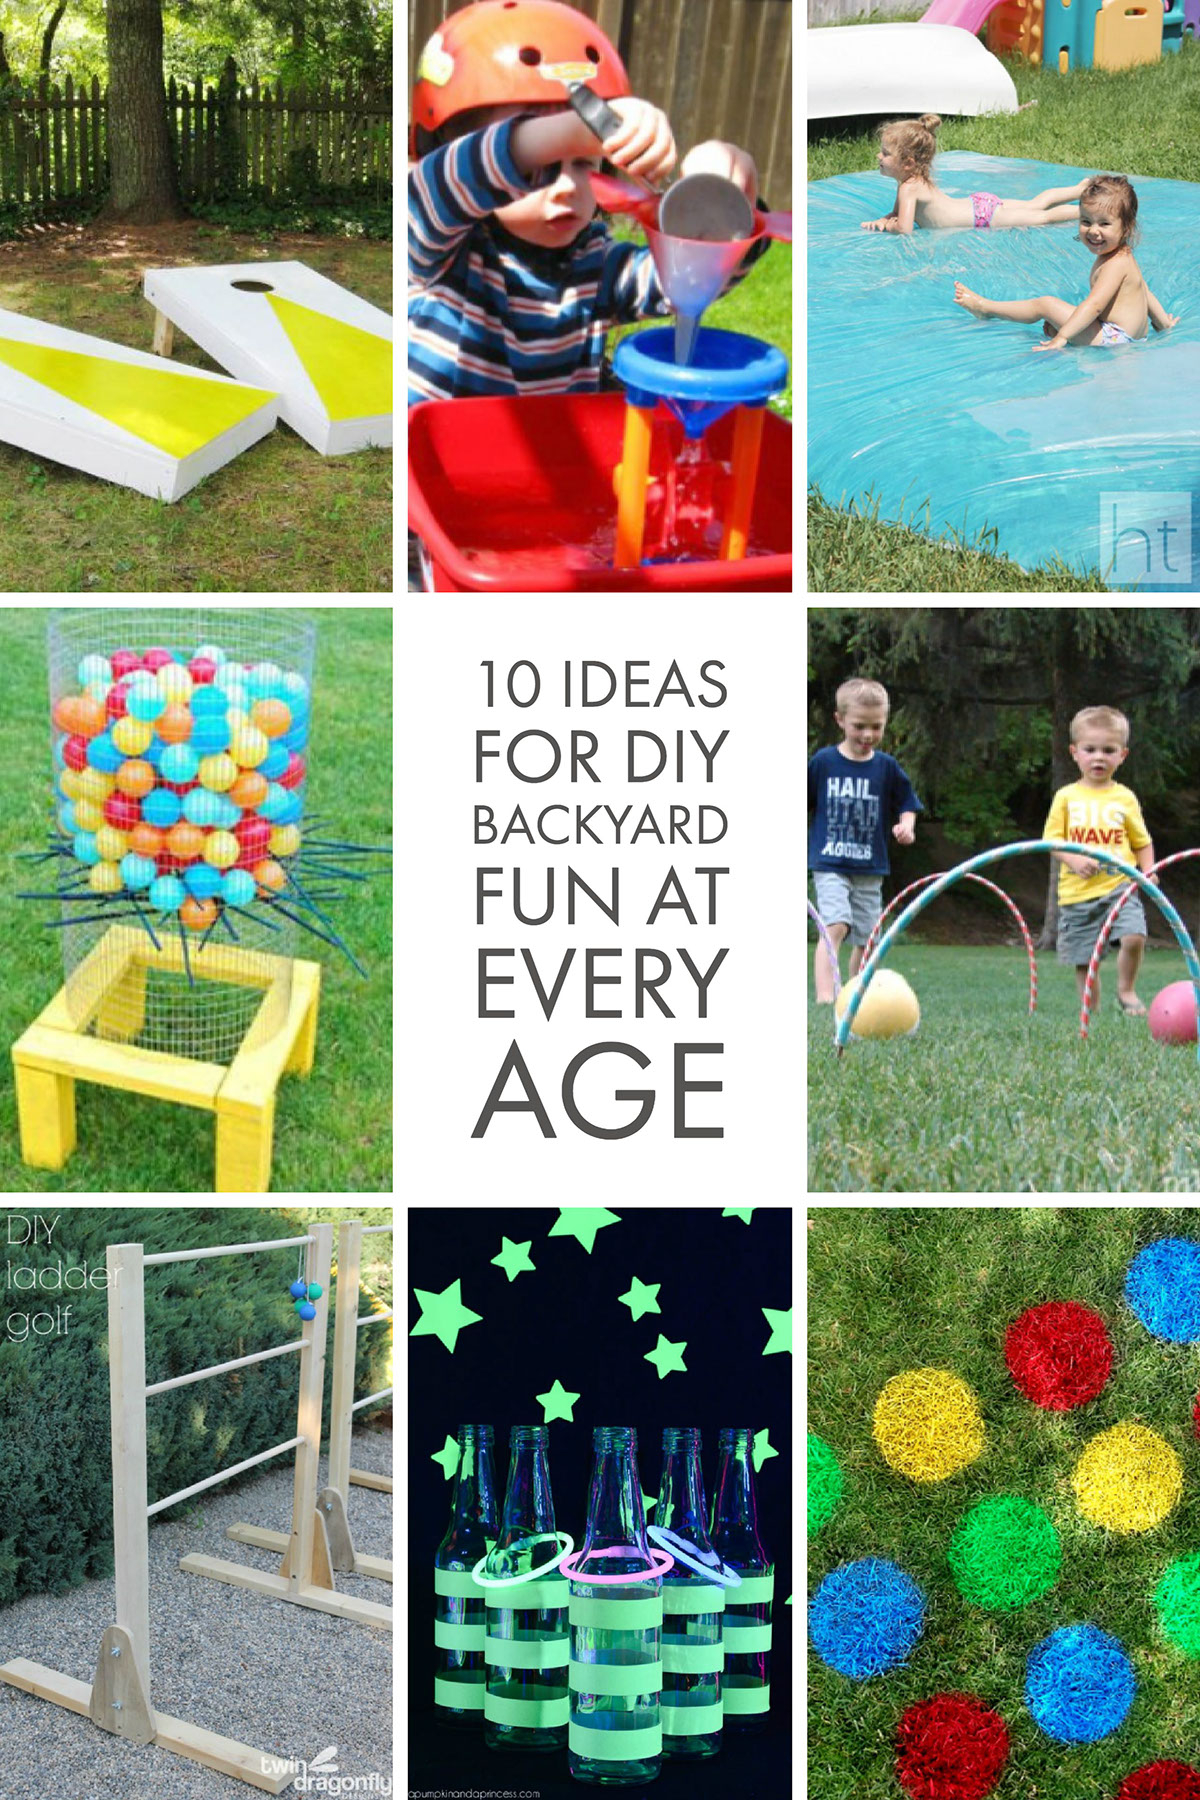 10 Creative Backyard Activities For Kids Nofilter throughout Backyard Kid Ideas